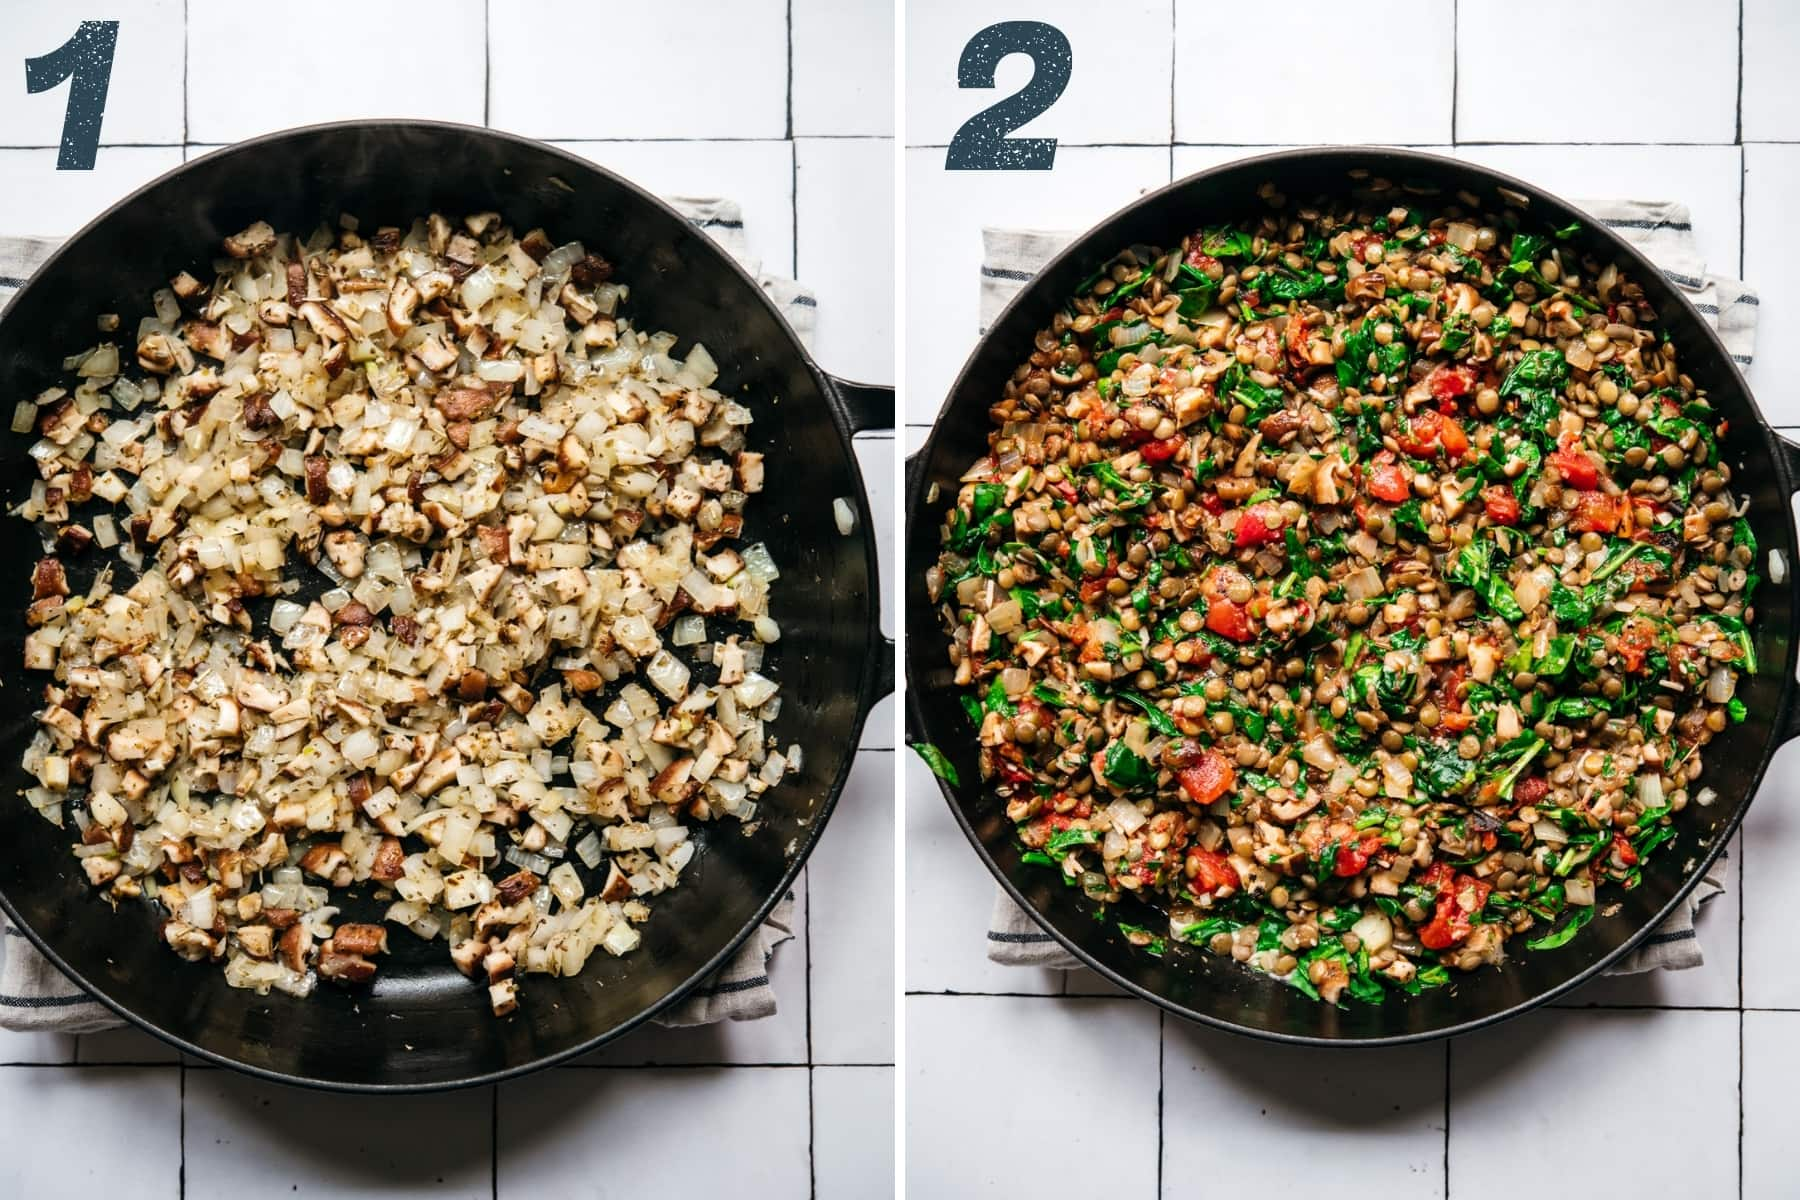 on the left: sautéed onions, garlic and mushrooms in pan. on the right: sautéed vegetables, lentils and spinach in pan.